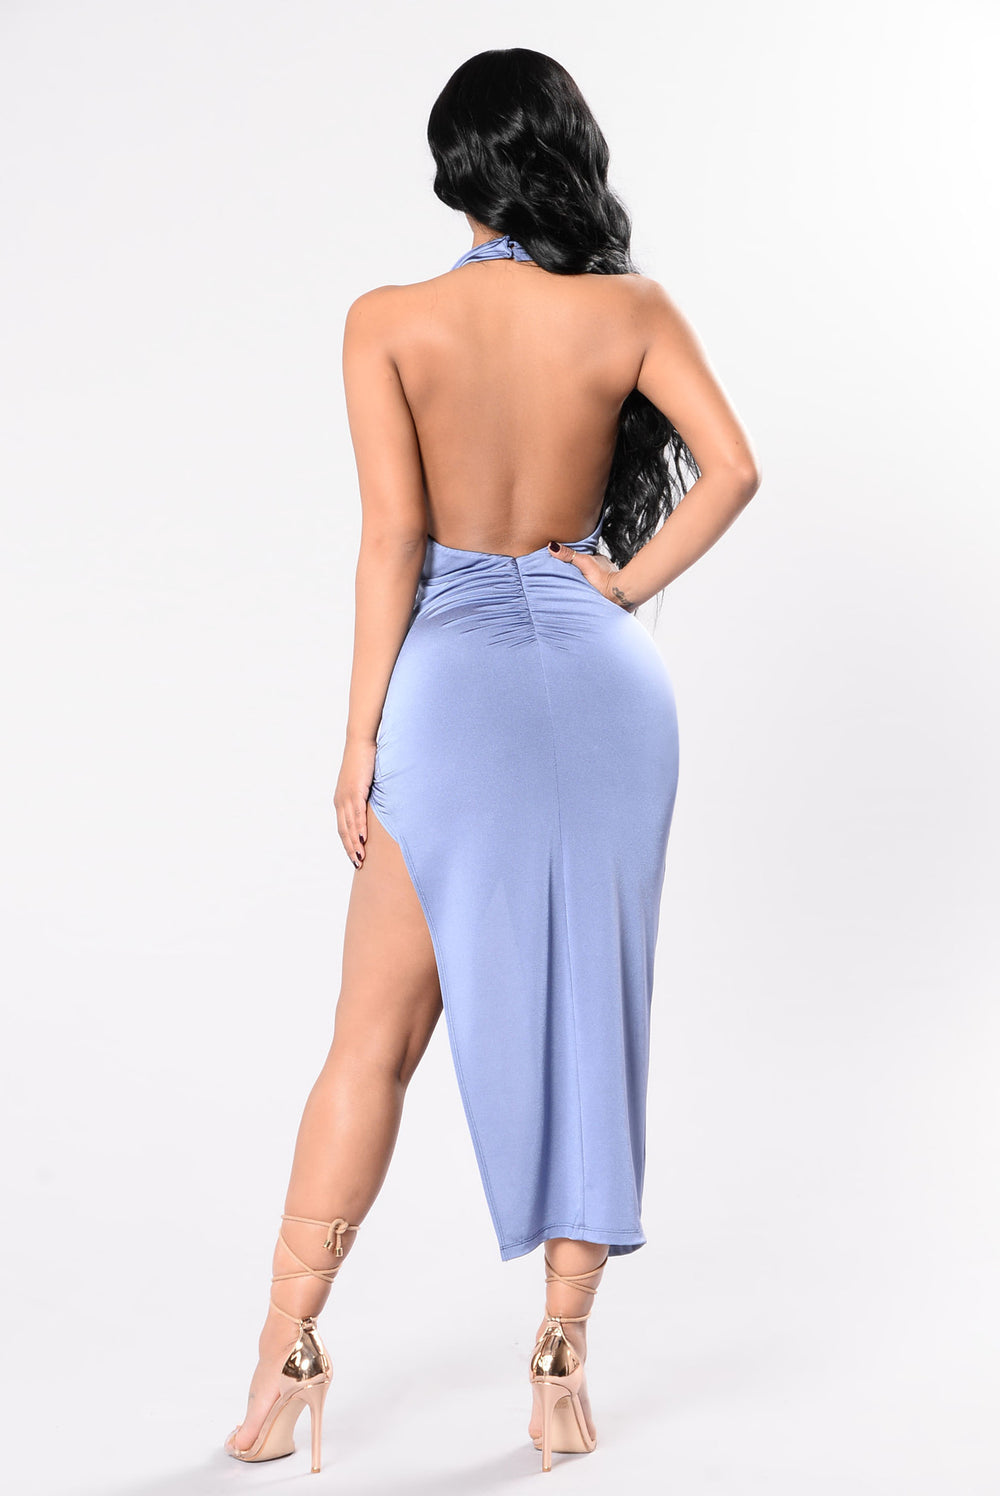 Show It Off Dress - Show Blue